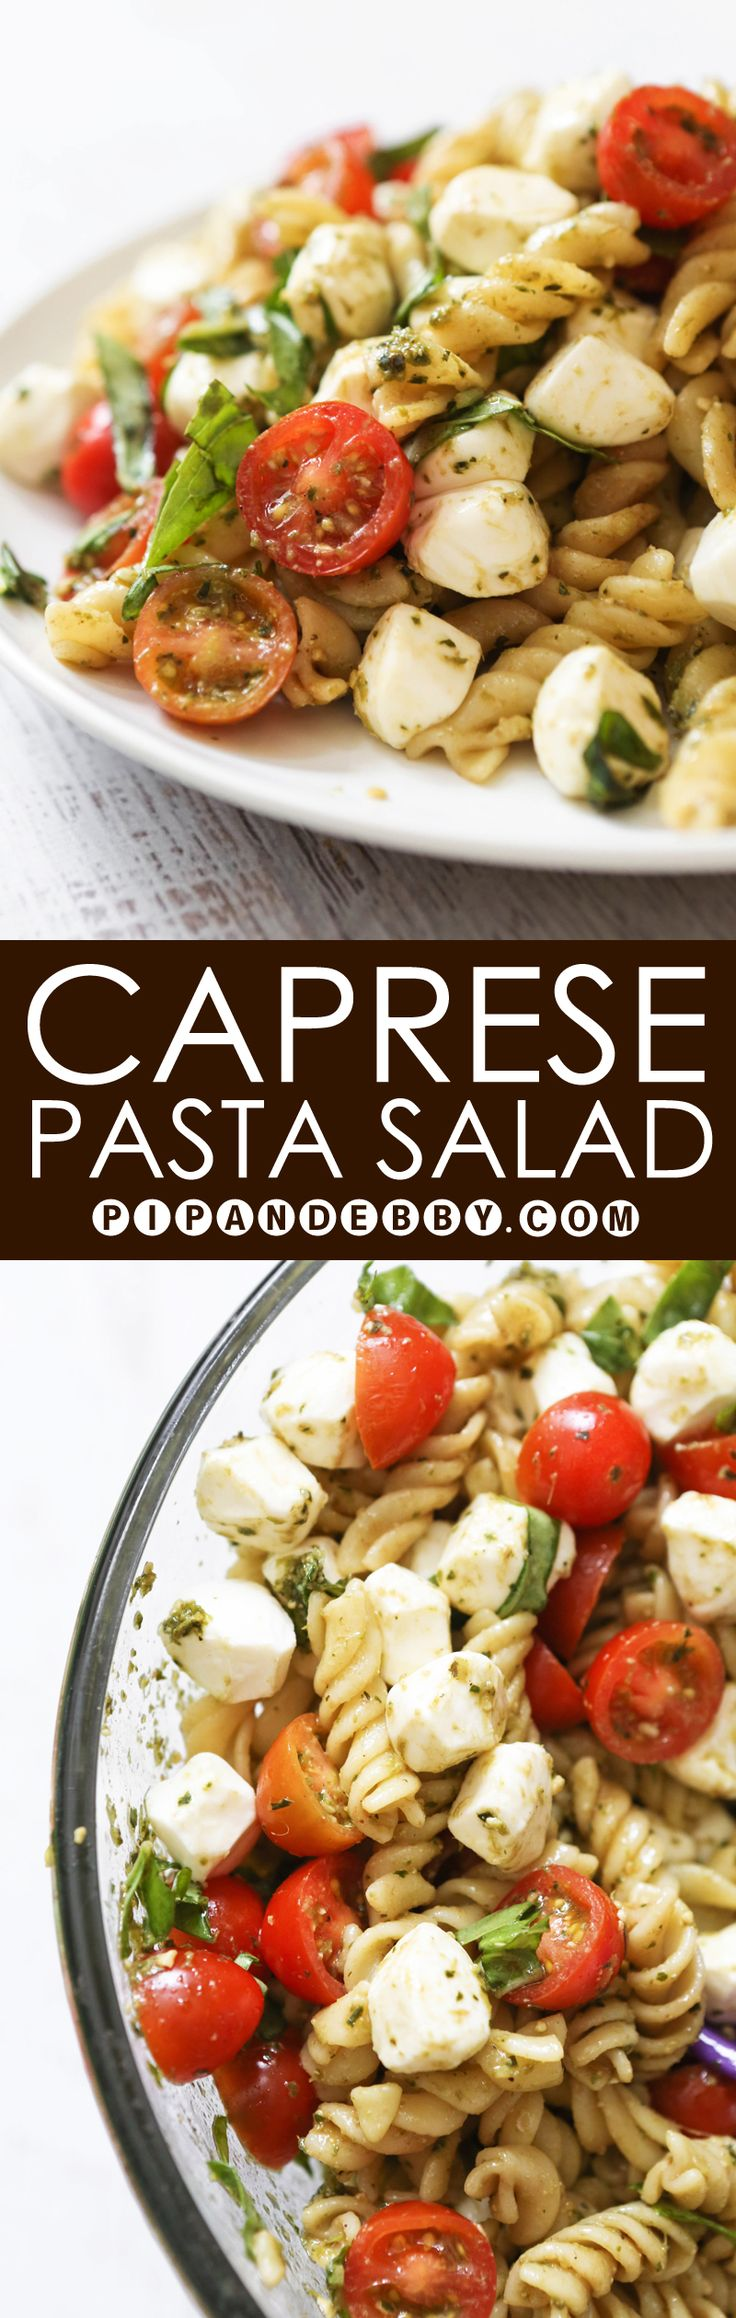 Caprese Pasta Salad - This perfect combination of ingredients is great as an appetizer or a salad.